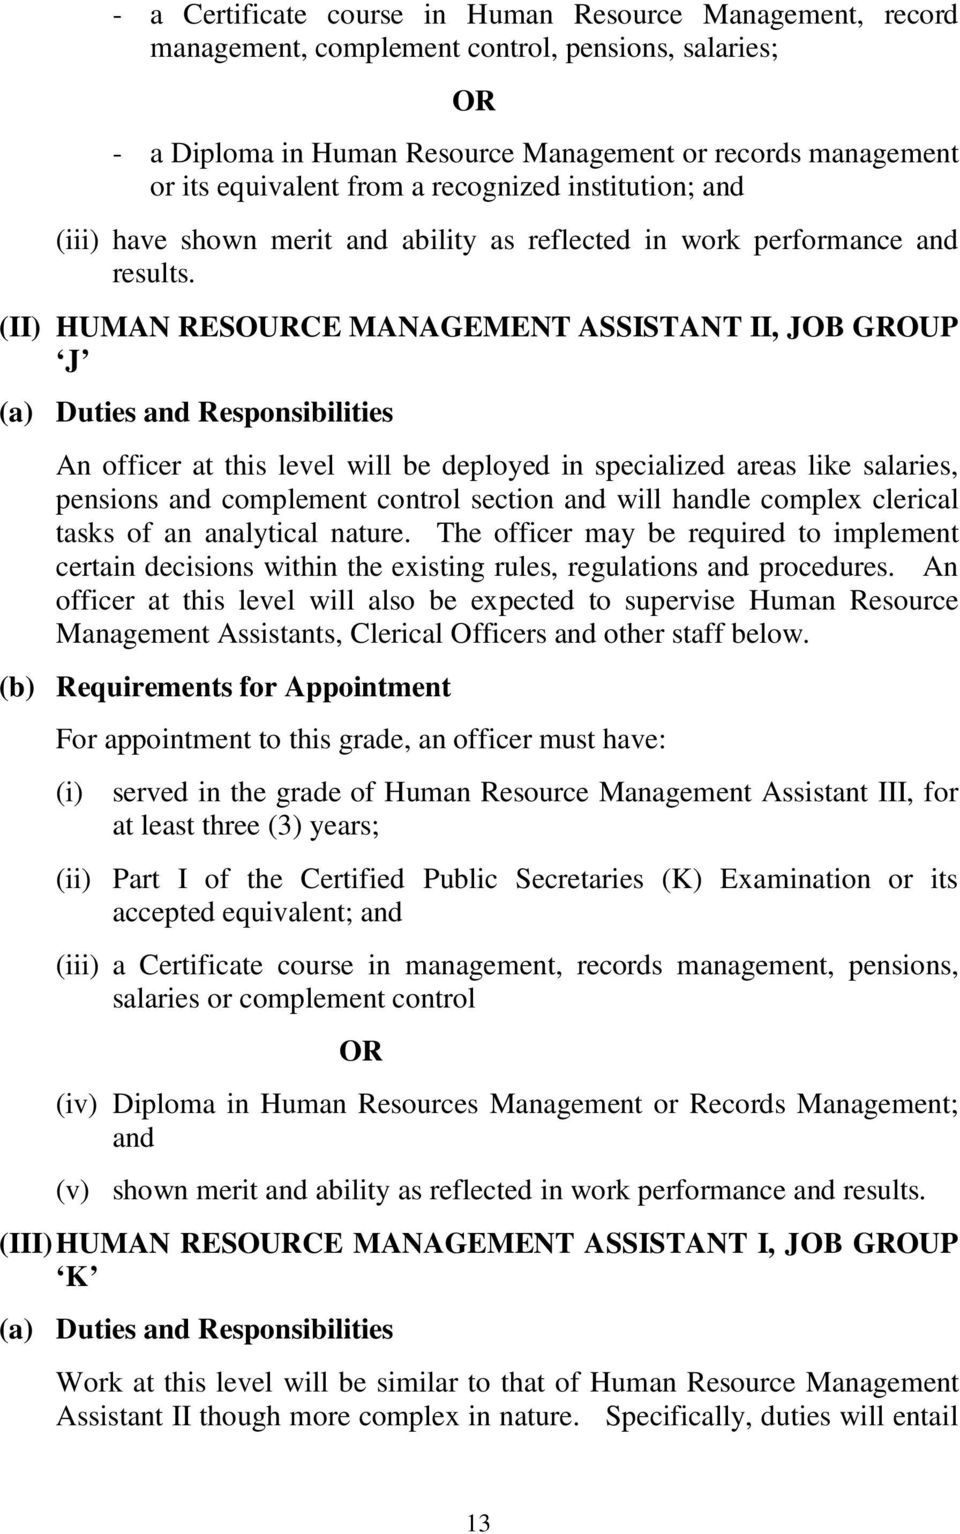 (II) HUMAN RESOURCE MANAGEMENT ASSISTANT II, JOB GROUP J An officer at this level will be deployed in specialized areas like salaries, pensions and complement control section and will handle complex